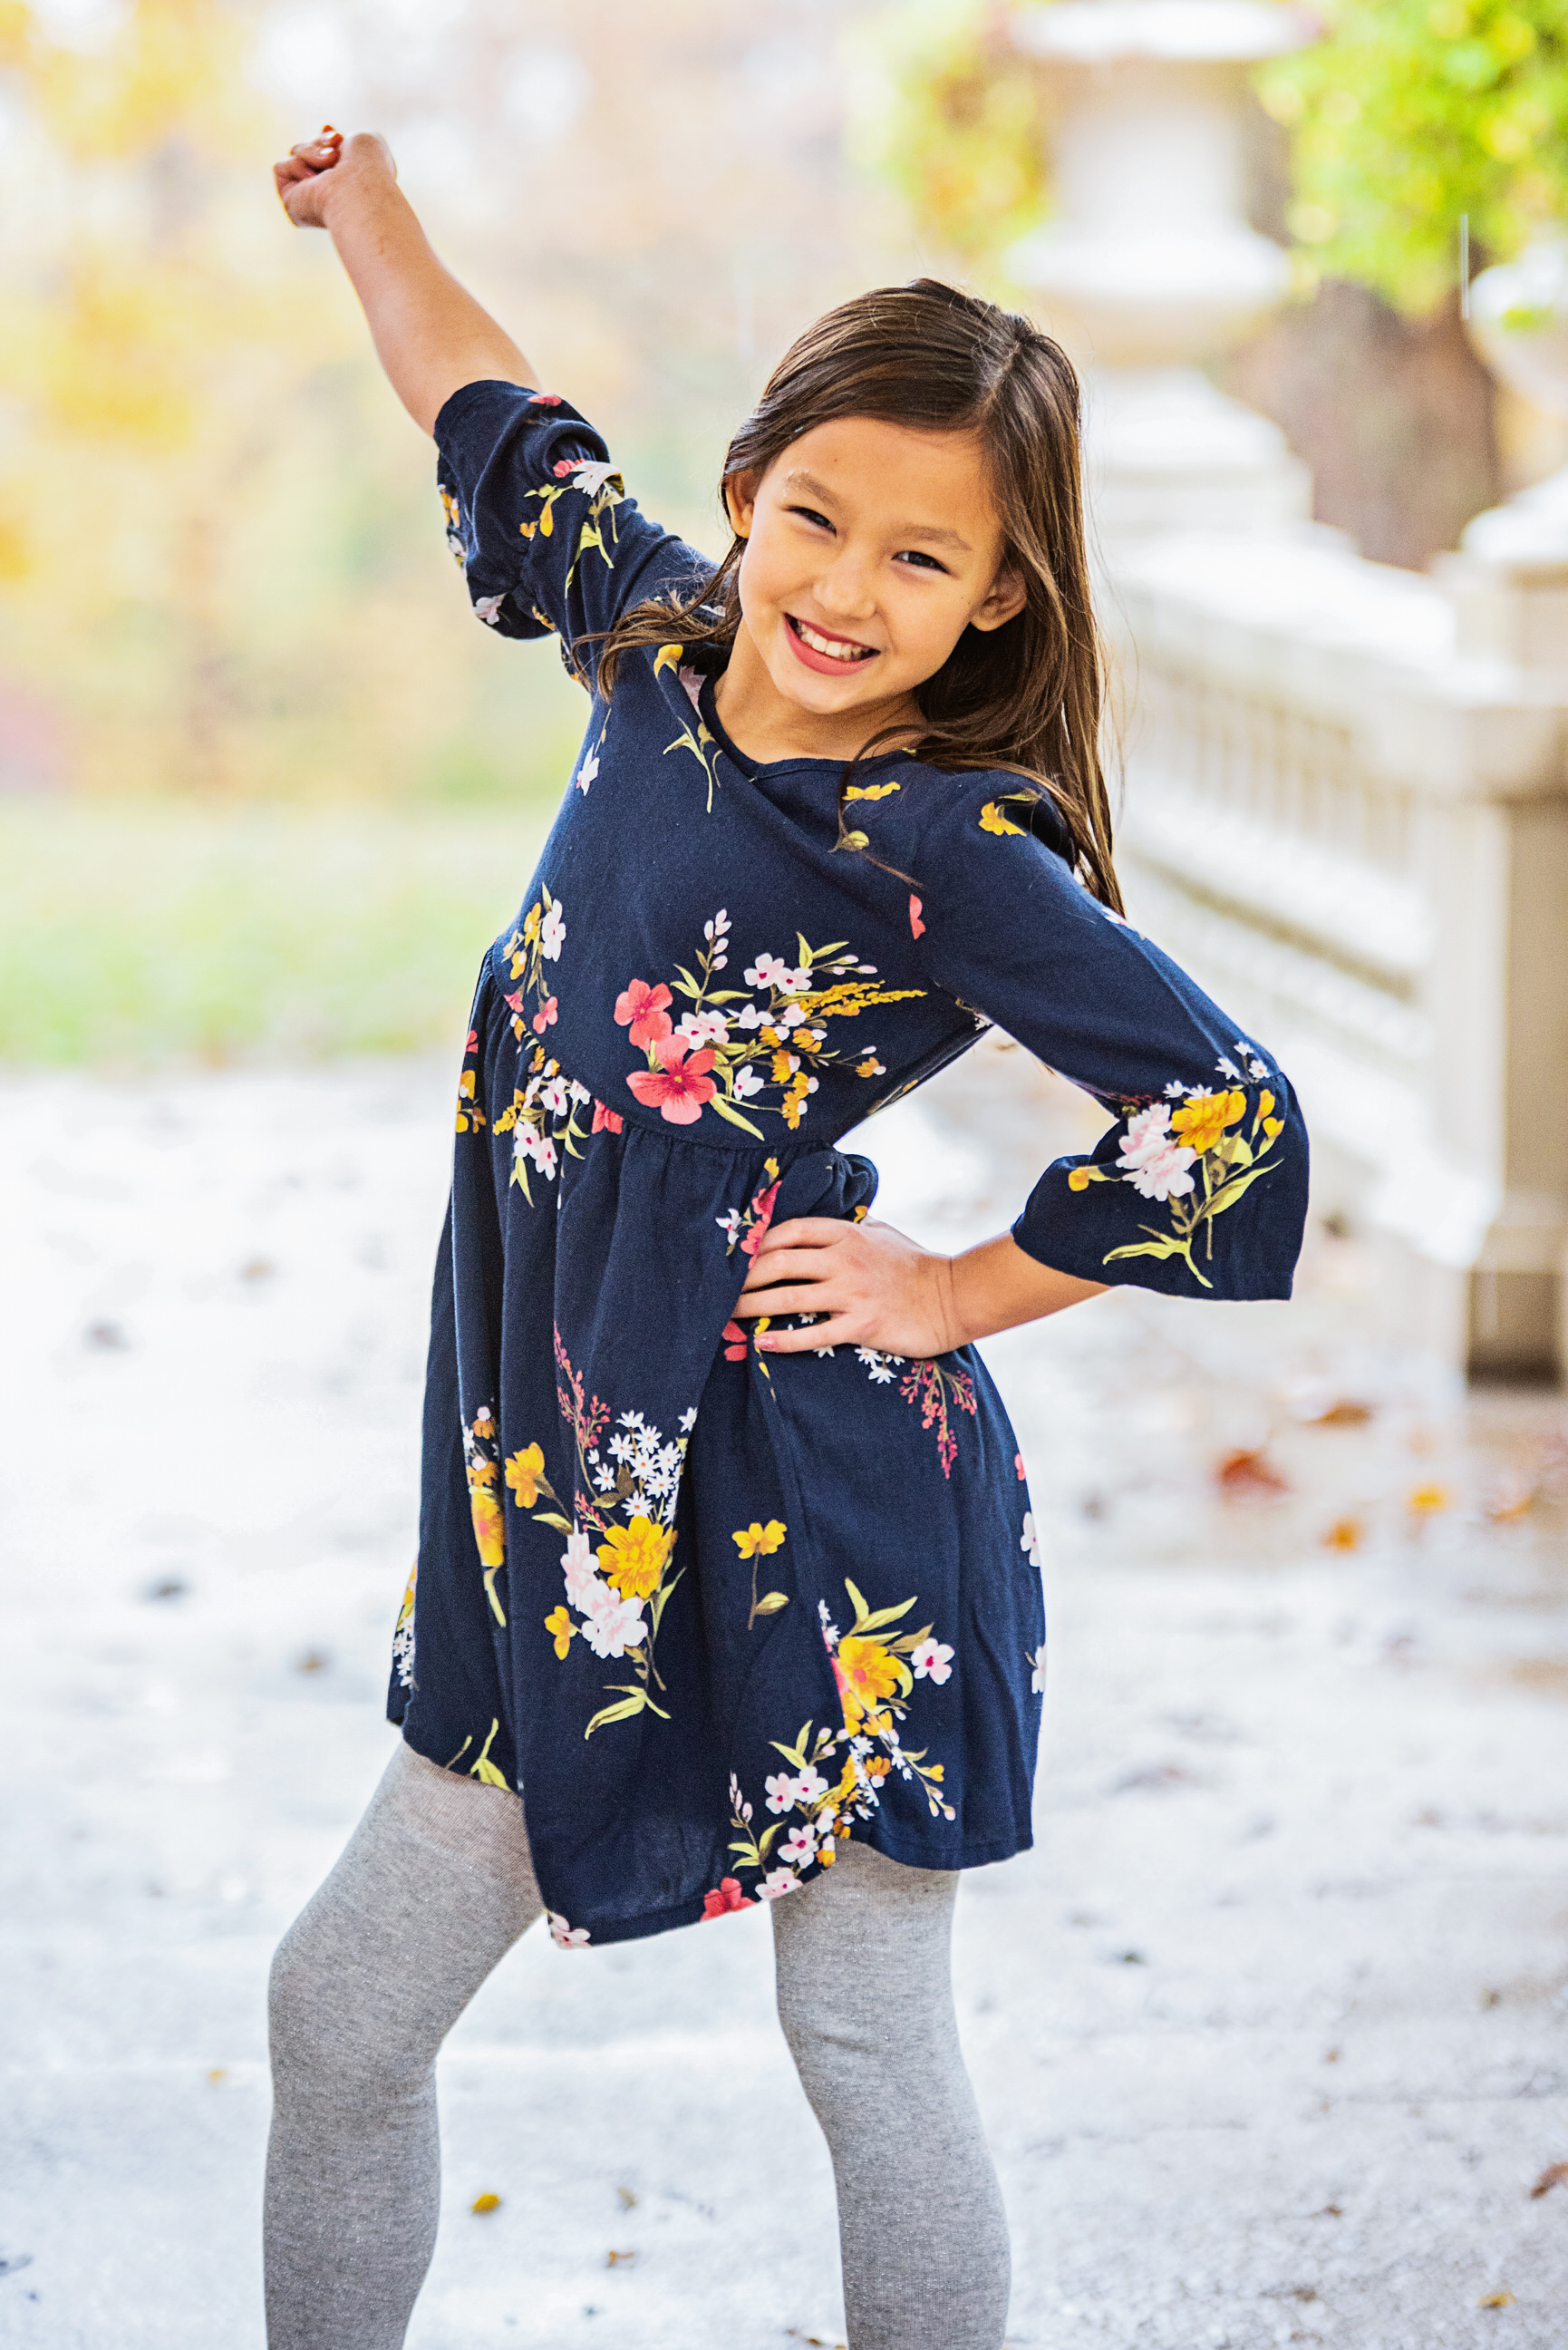 MarylandFamilyPhotography-LienFamily2018-1.jpg